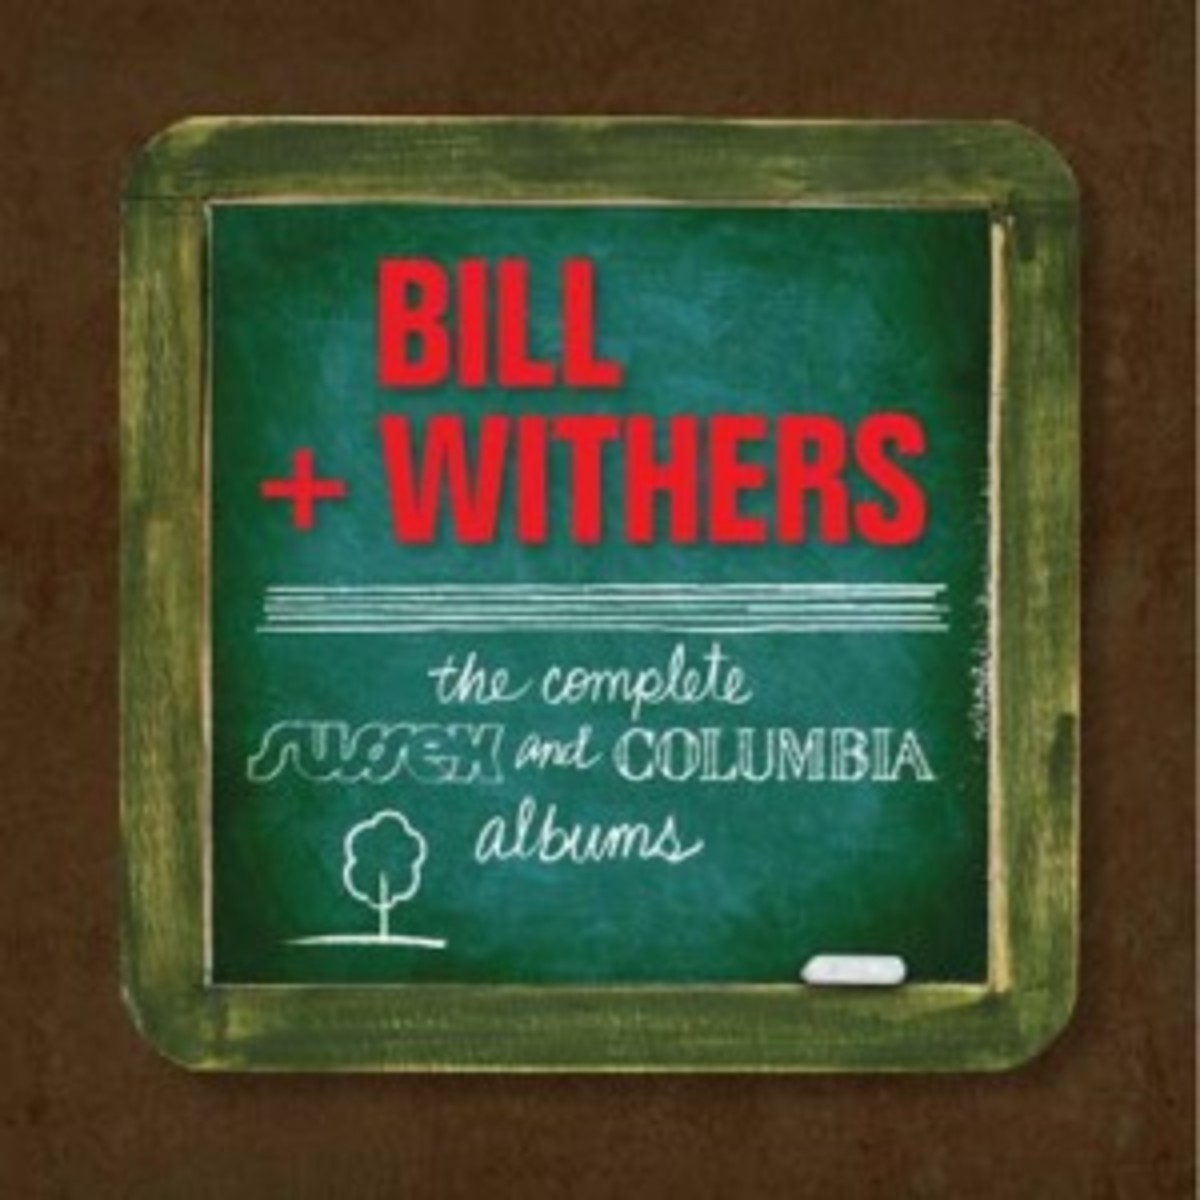 Bill Withers Sussex and Columbia Albums